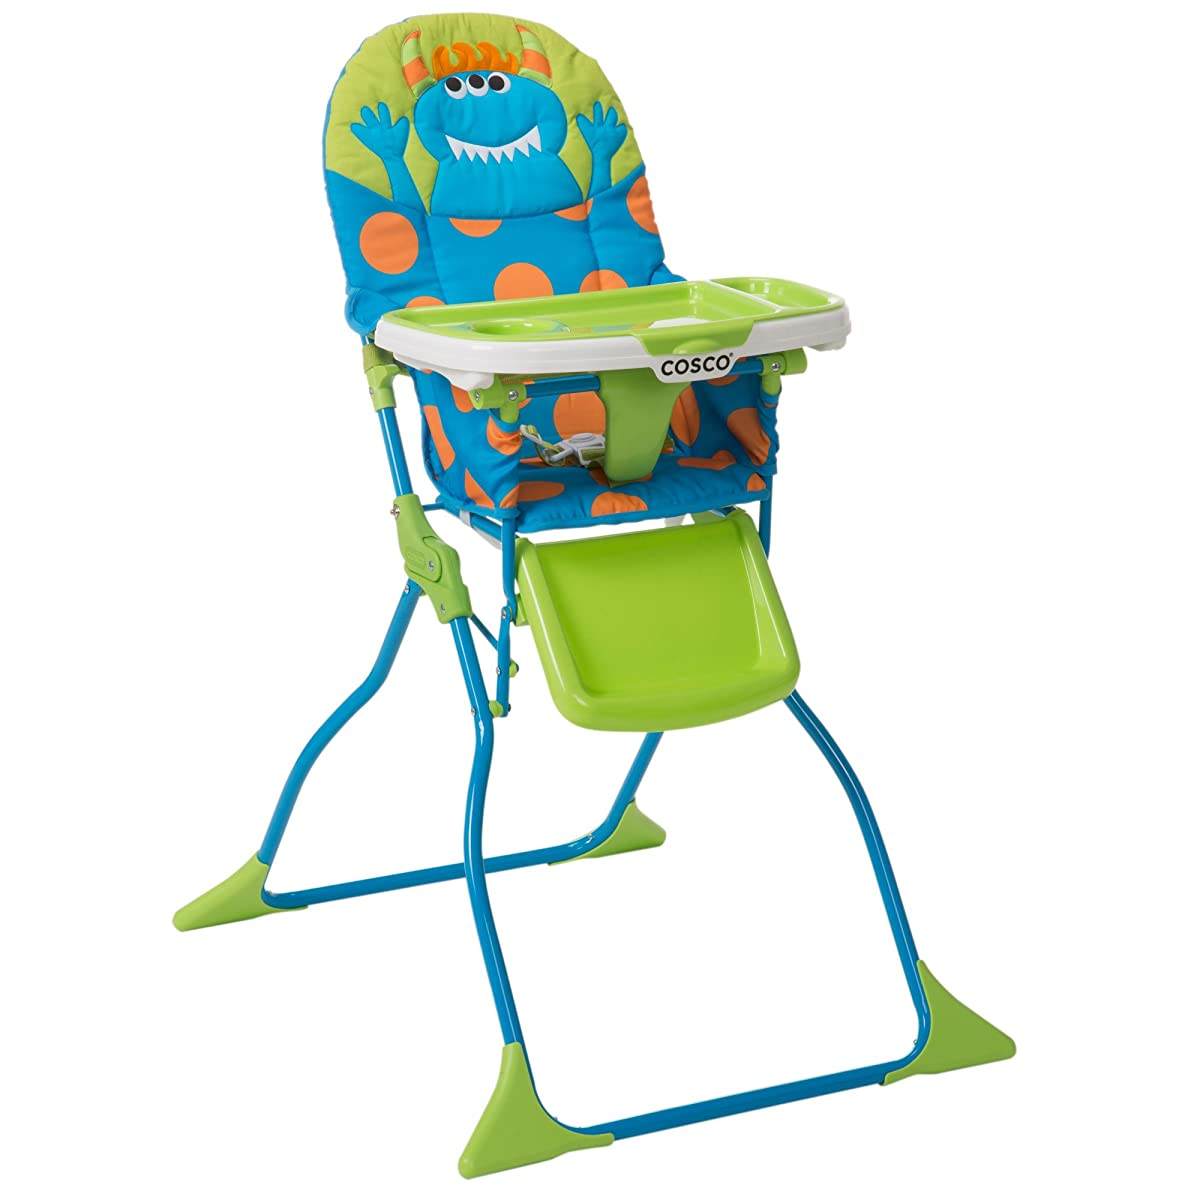 high chairs for babies and toddlers personalized beach chair cosco simple fold deluxe chair, monster syd